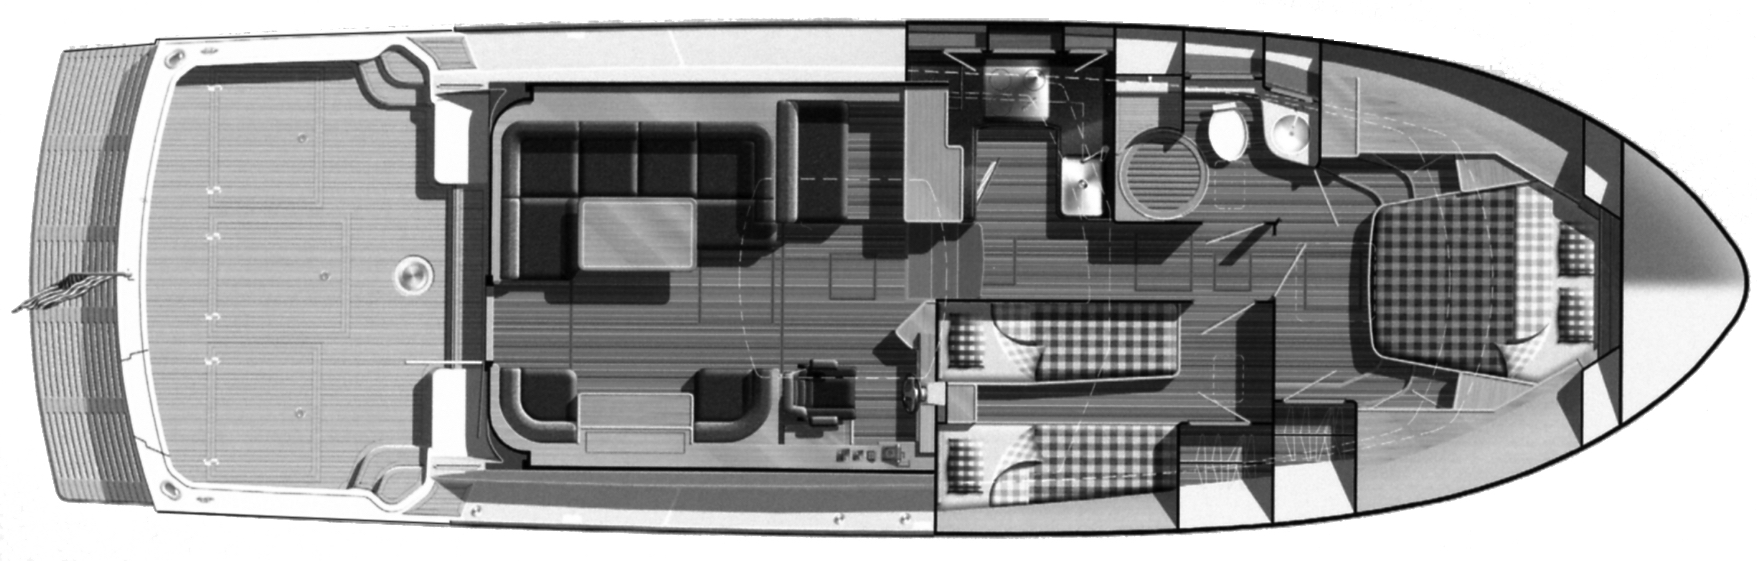 Eastbay 45 SX Floor Plan 2